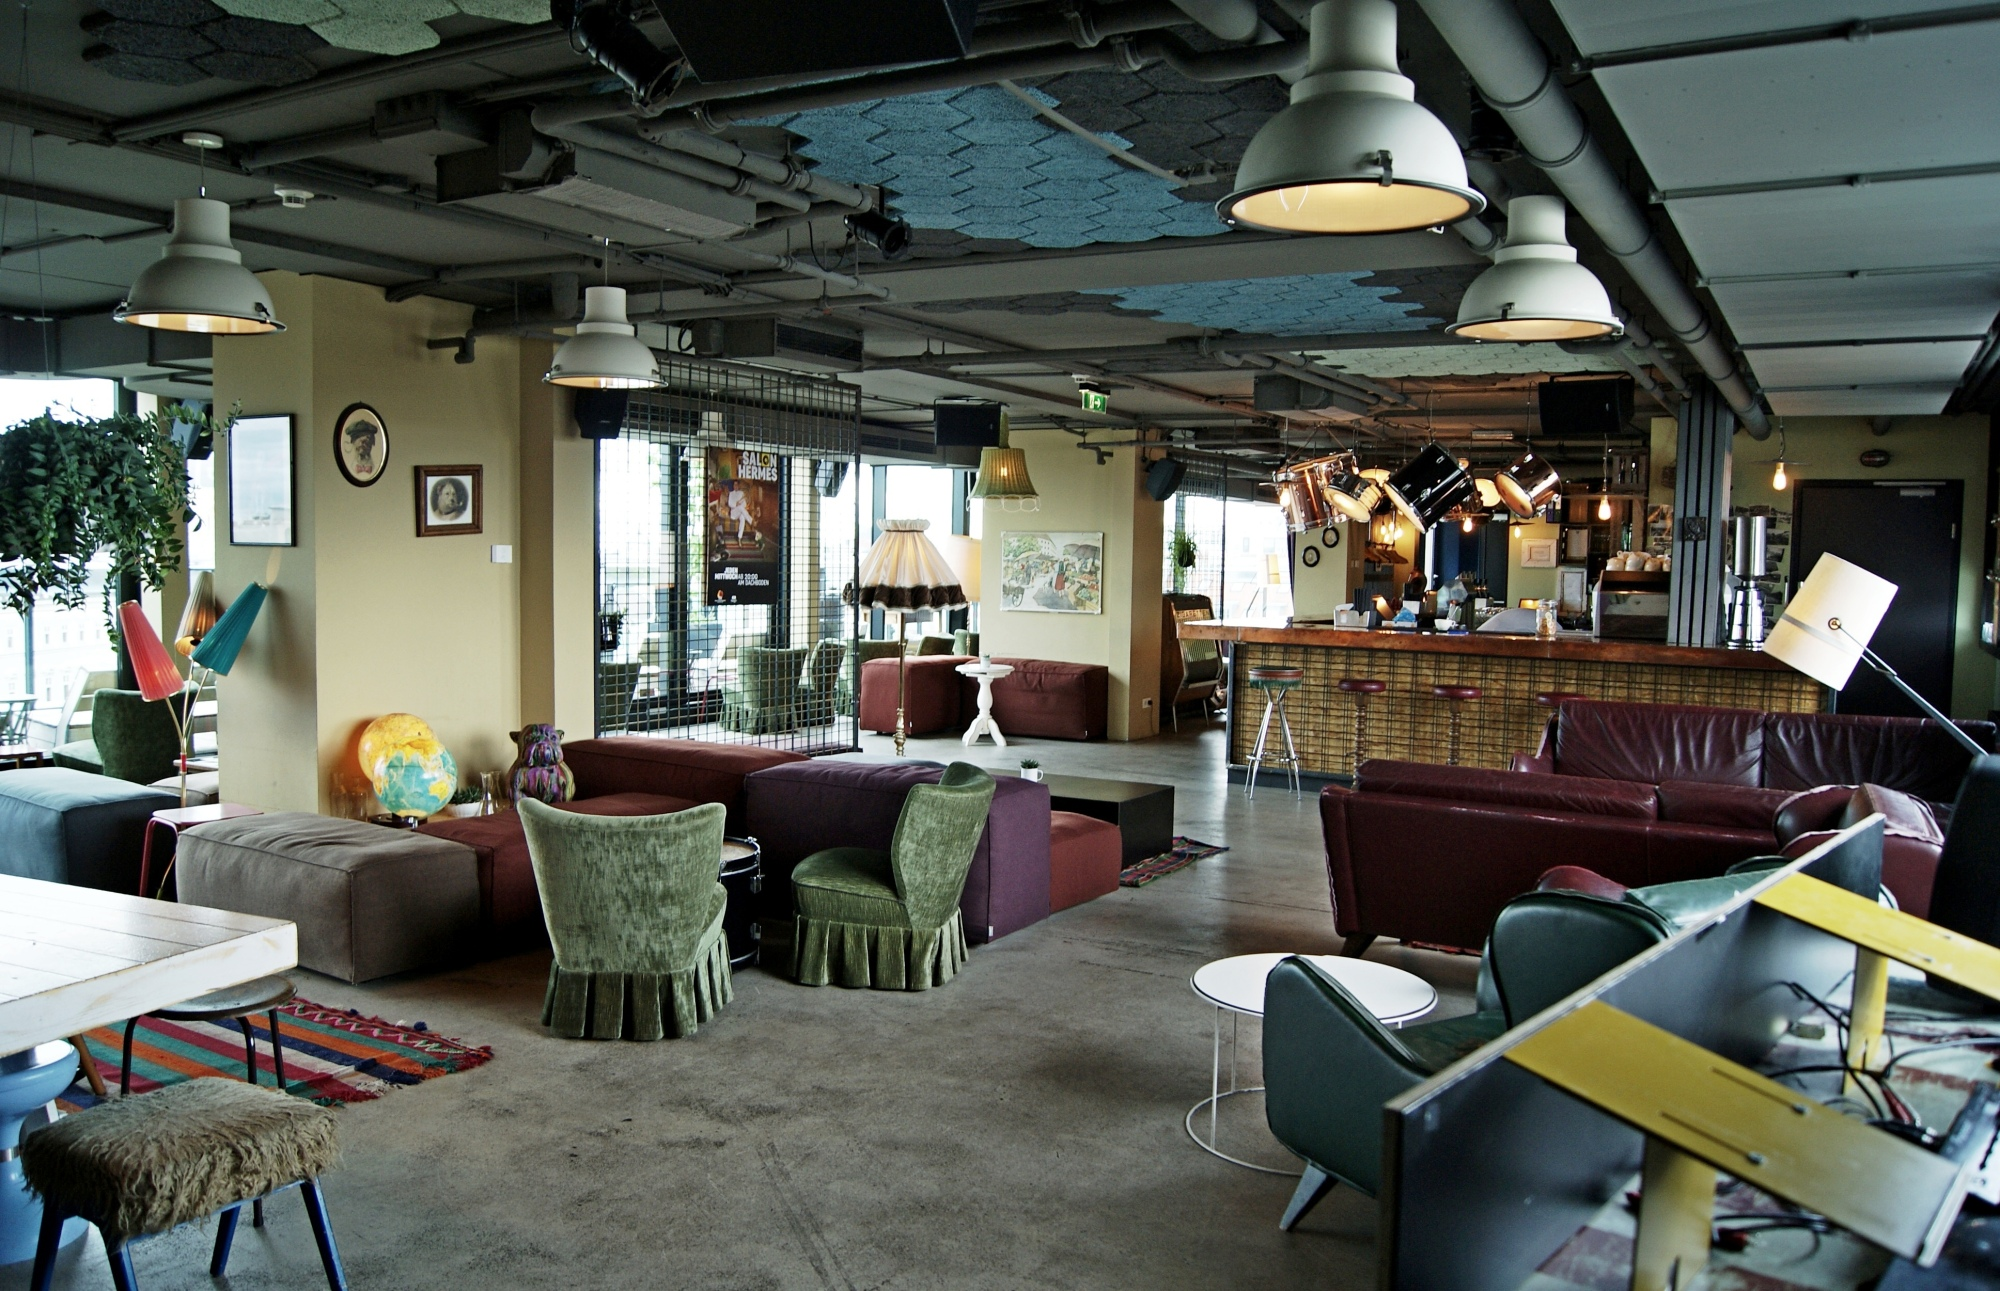 25hours Hotel rooftop bar interior